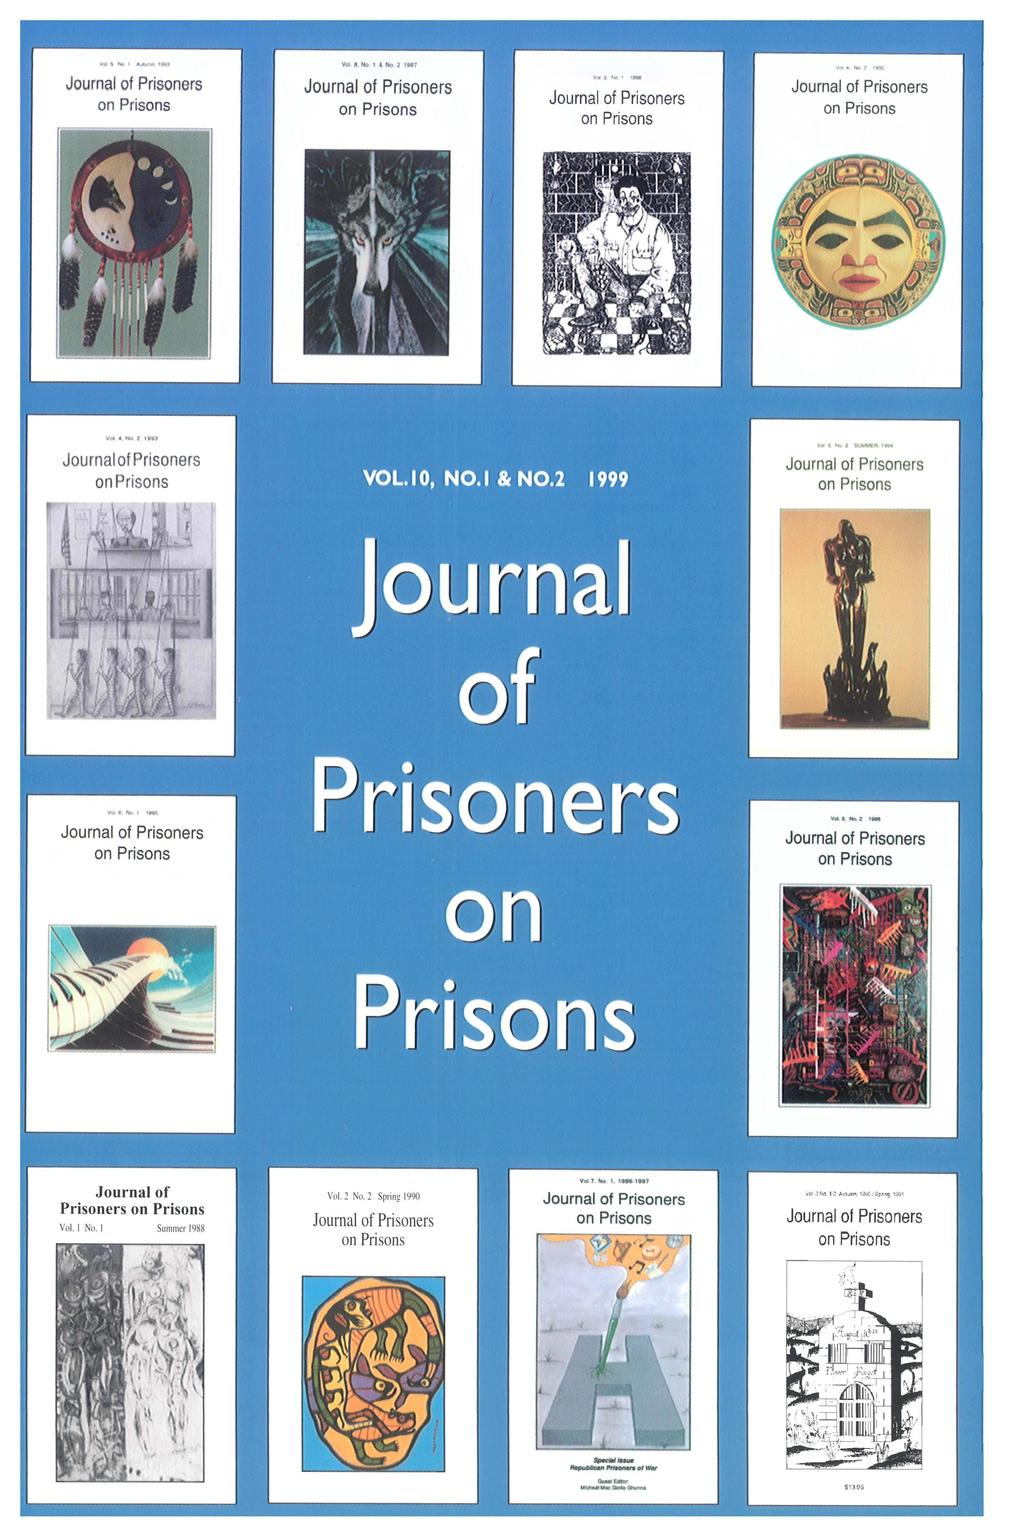 Journal of Prisoners on Prisons Journal of Prisoners on Prisons Journal of Prisoners on Prisons Journal of Prisoners on